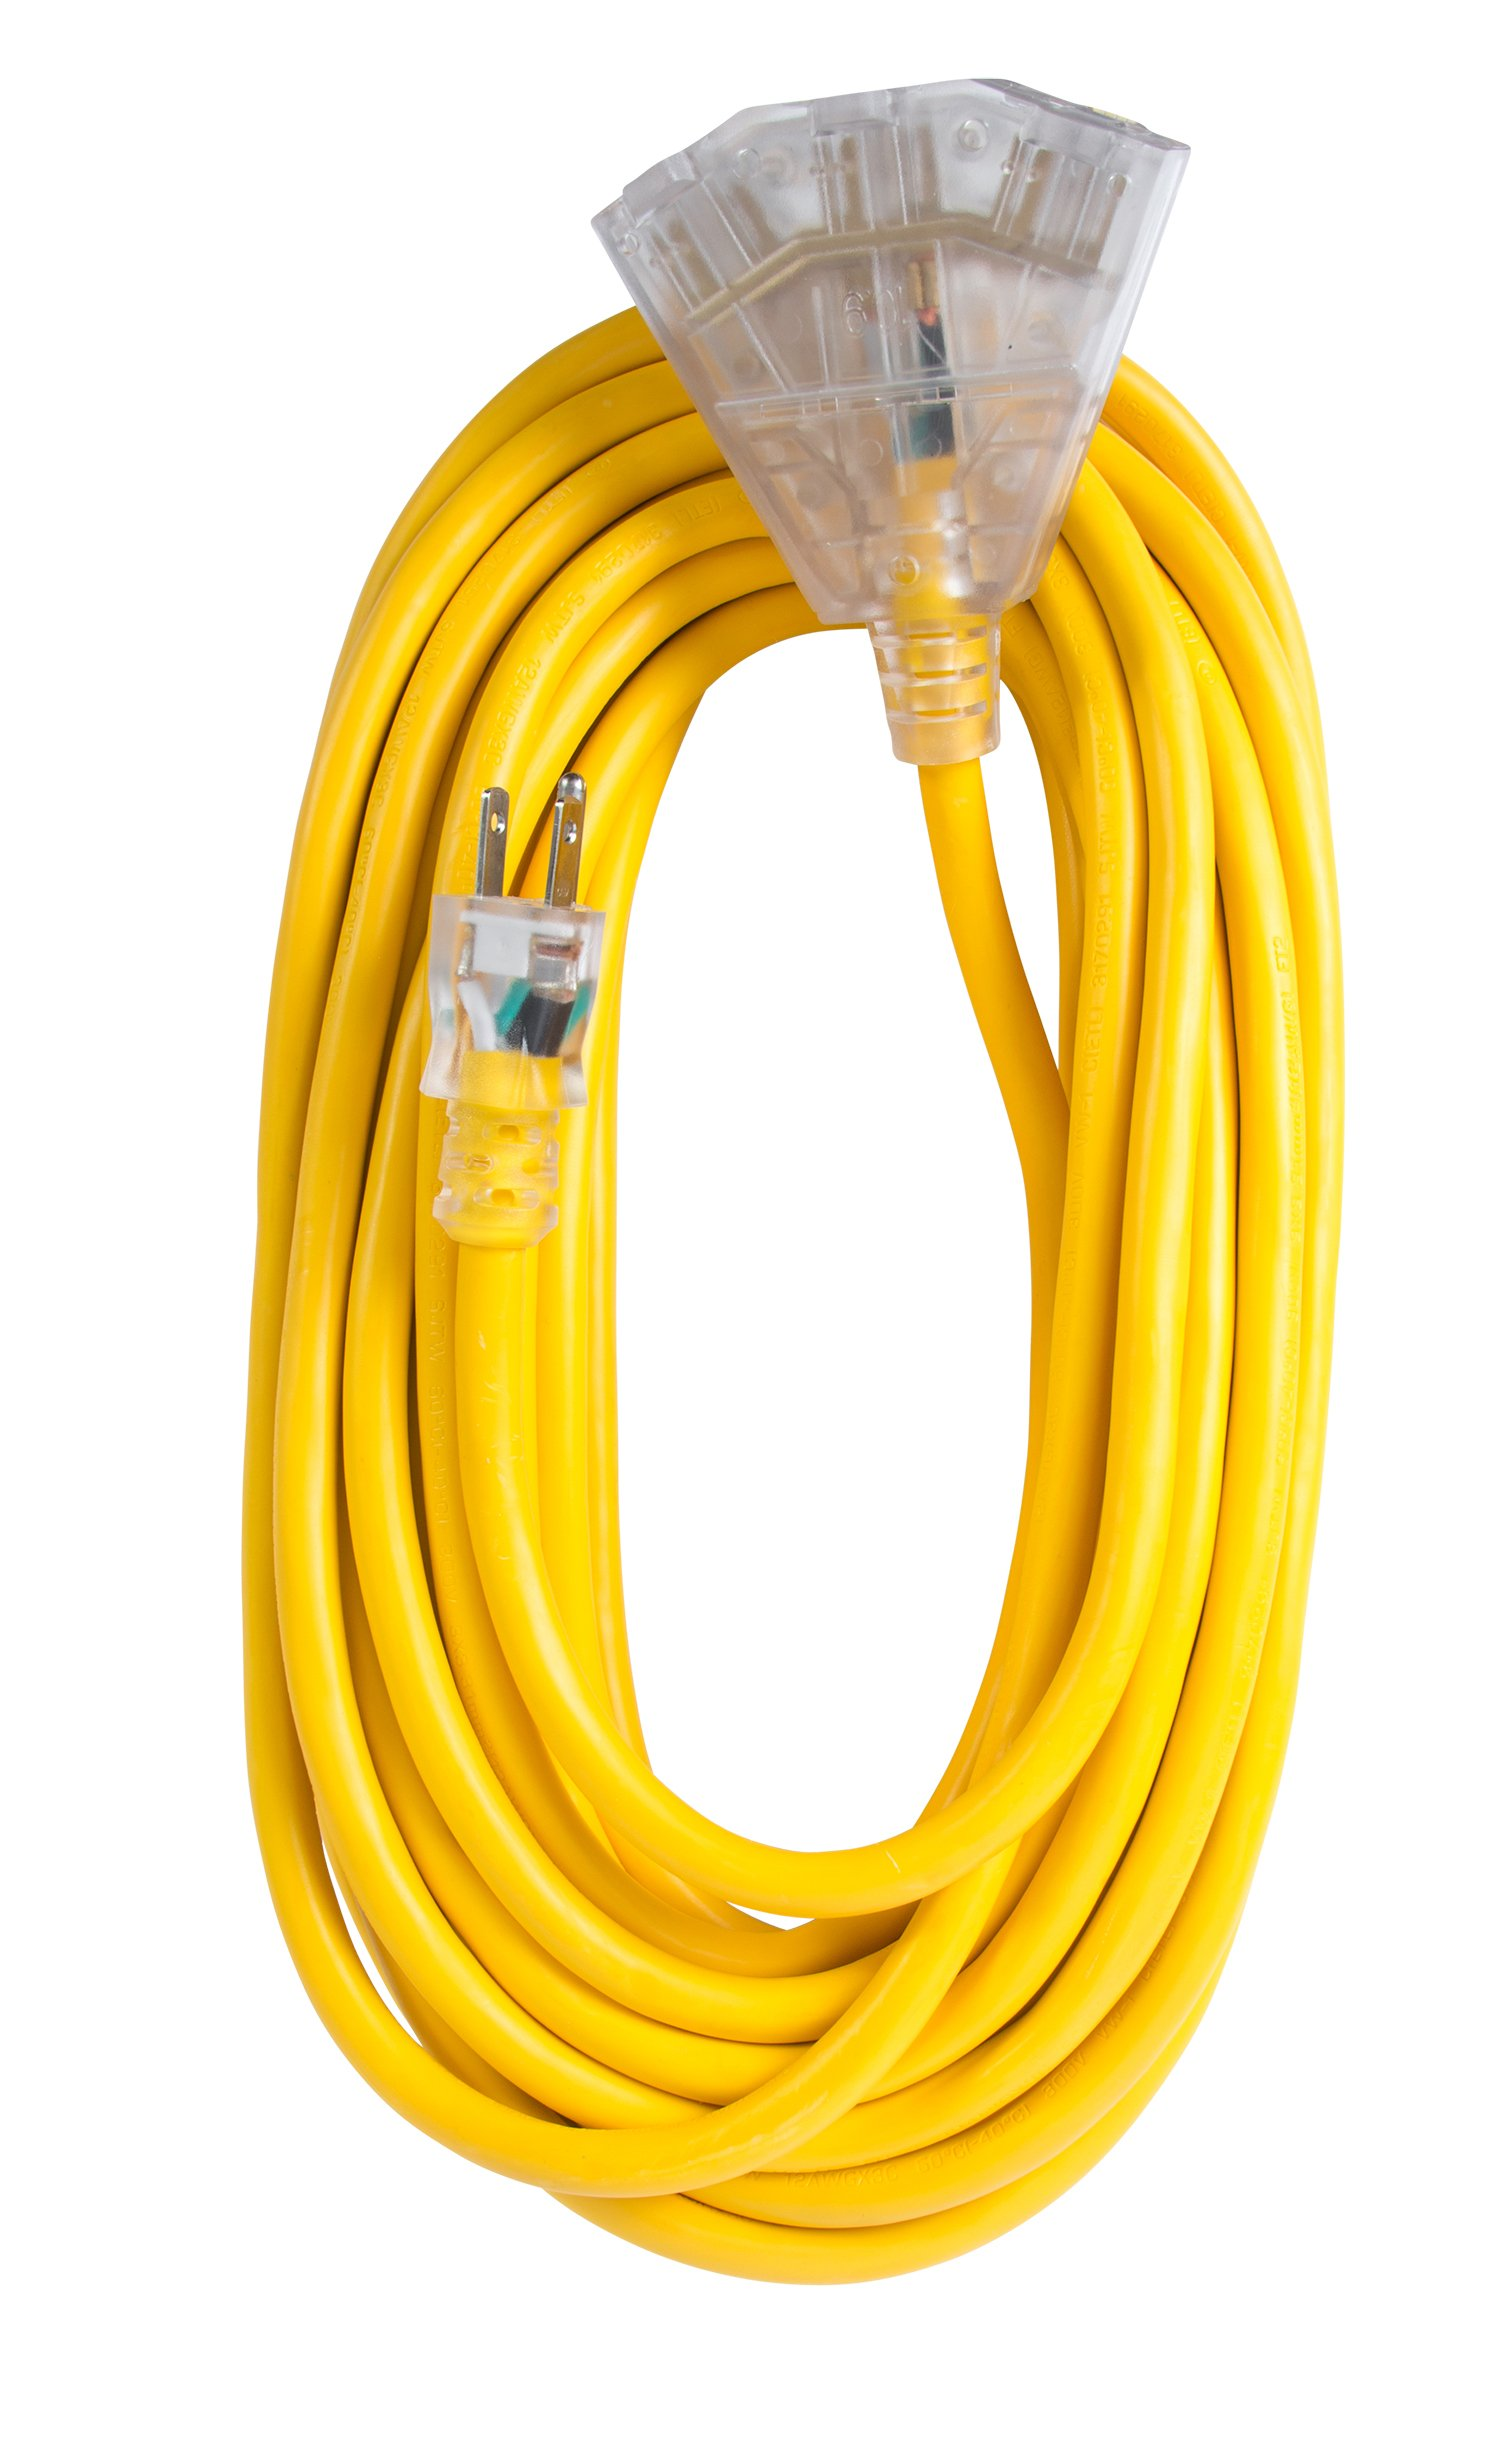 Bergen Industries Inc OC501233T Extra Heavy-Duty Outdoor Triple Tap Extension Cord, 50 ft, 12 AWG, 15A/125V AC by Bergen Industries Inc (Image #1)